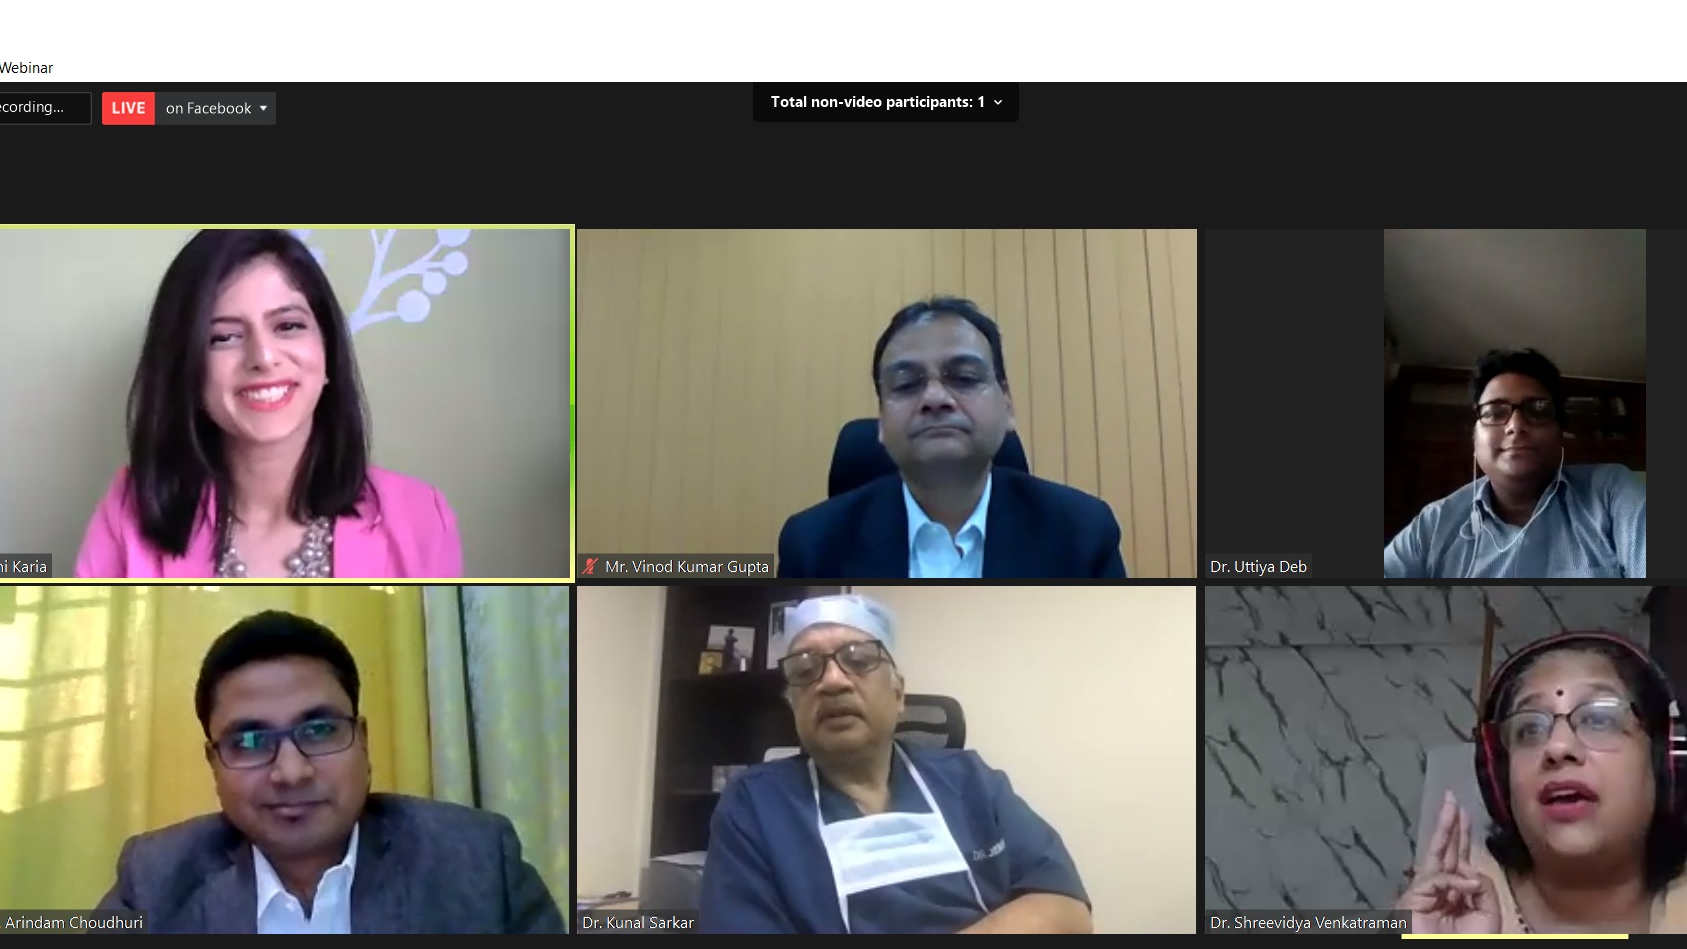 Top left to right: Ms Dhwani Karia, Mr Vinod Kumar Gupta, and Dr. Uttiya Deb | Bottom left to right: Mr. Arindam Choudhuri,  Dr. Kunal Sarkar, and Dr. Shreevidya Venkatraman